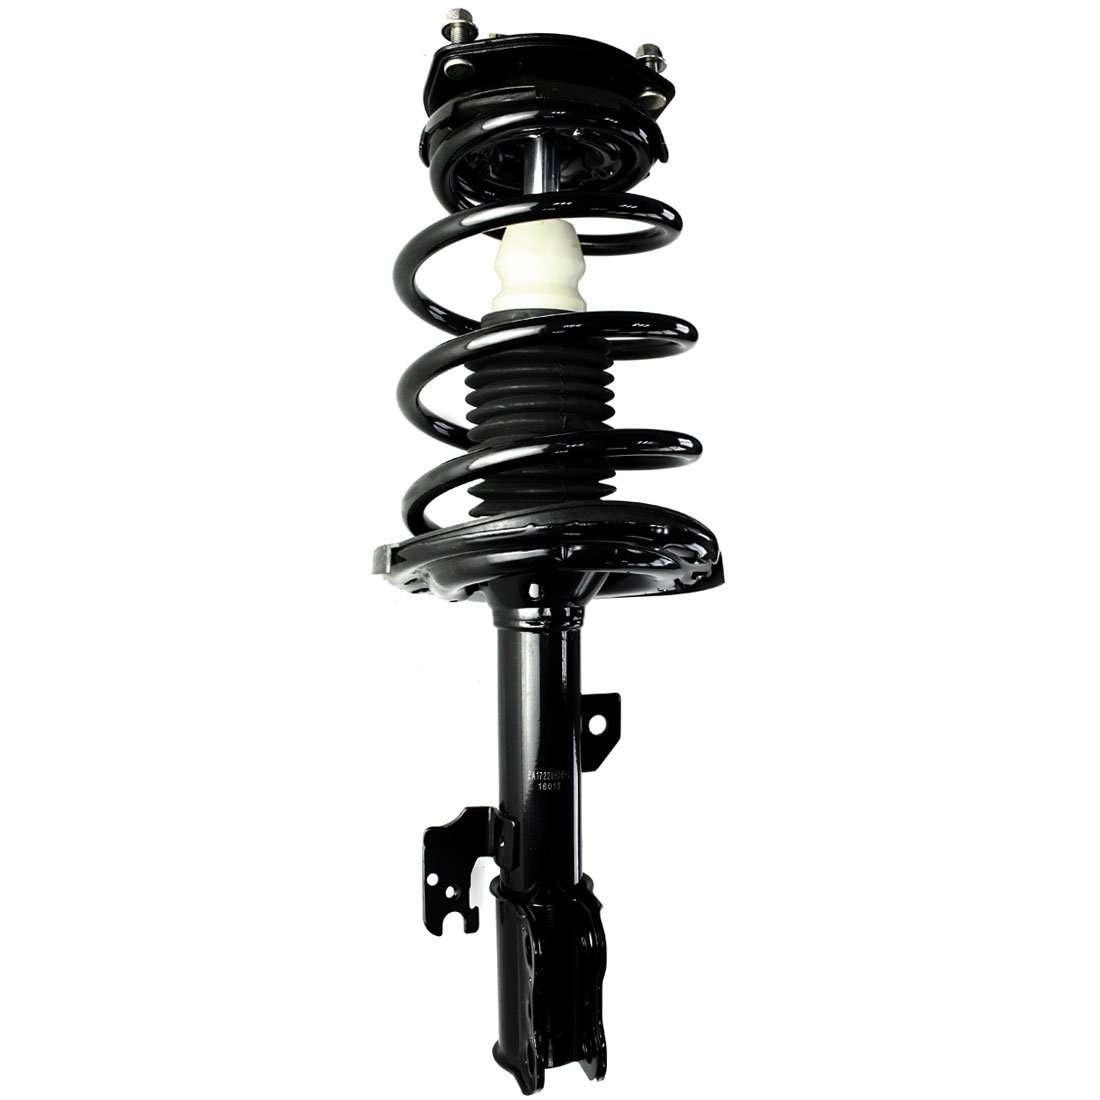 06-04 Toyota Camry Both 172205//172206 Front Complete Strut Assembly Left or Right Car//Auto Parts for 06-04 Lexus ES330